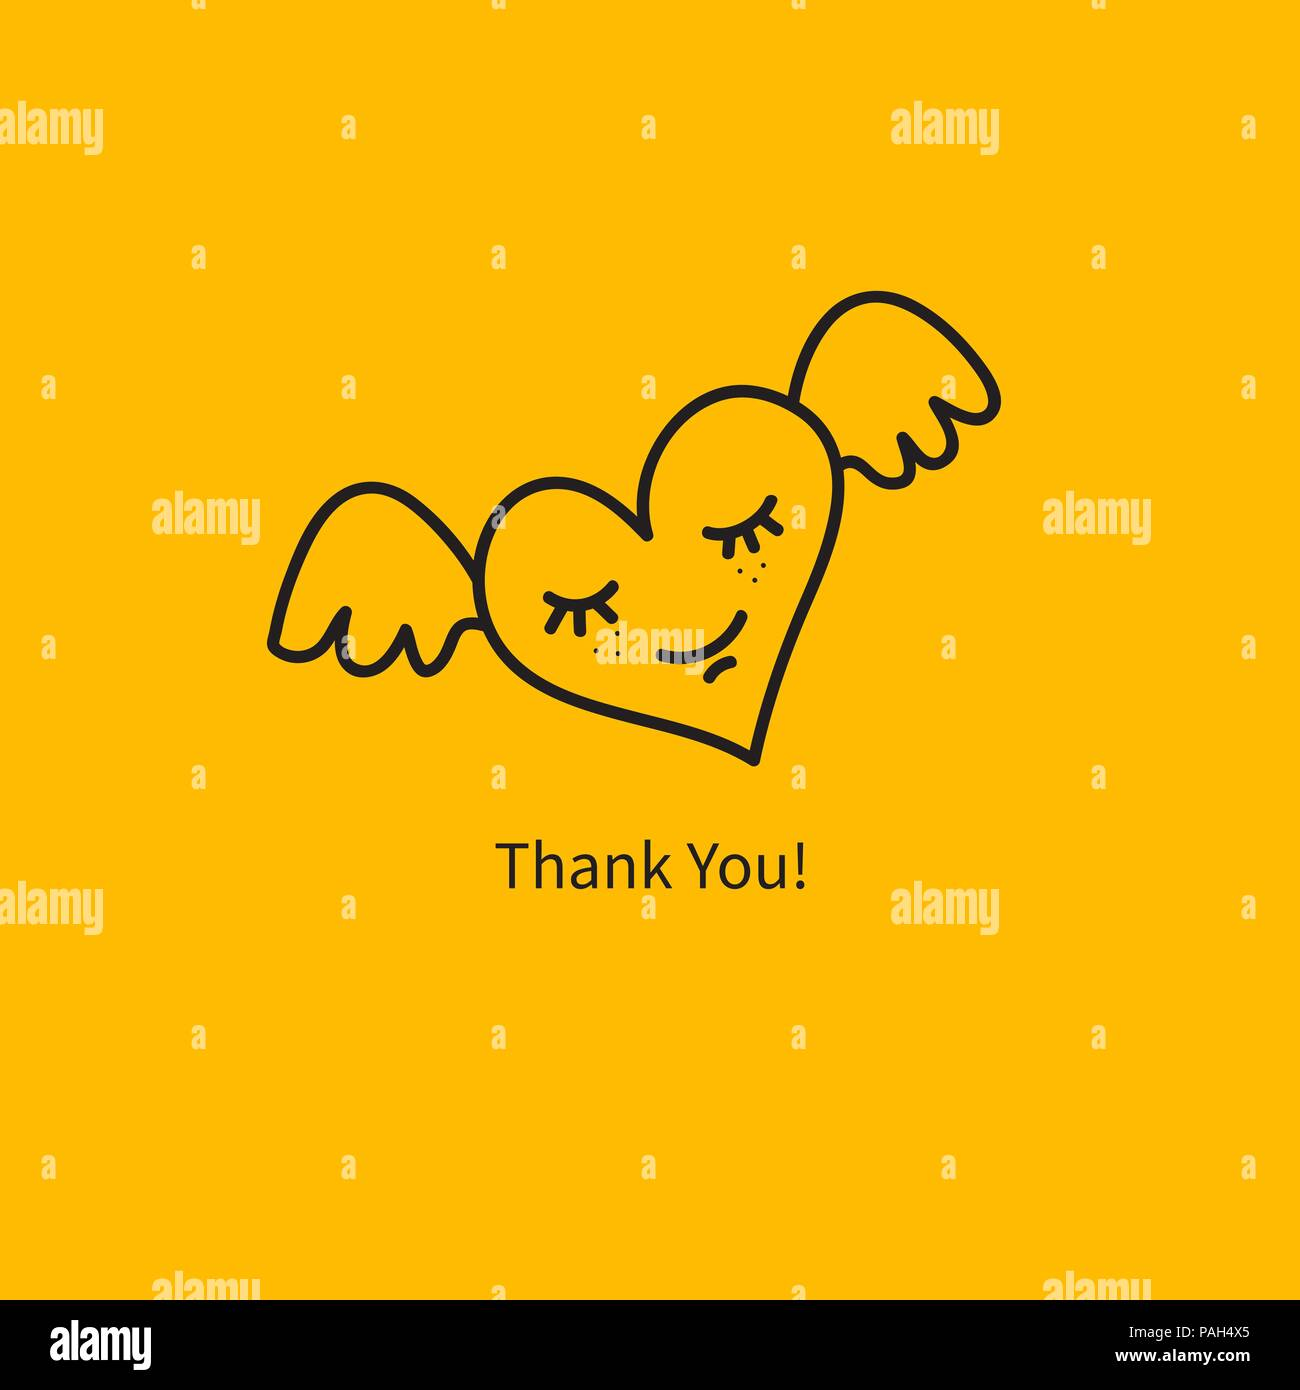 Heart With Wings Smiling Heart Thank You Card Gratitude Banner Thank You Sticker Smiley Heart Vector Illustration Stock Vector Image Art Alamy